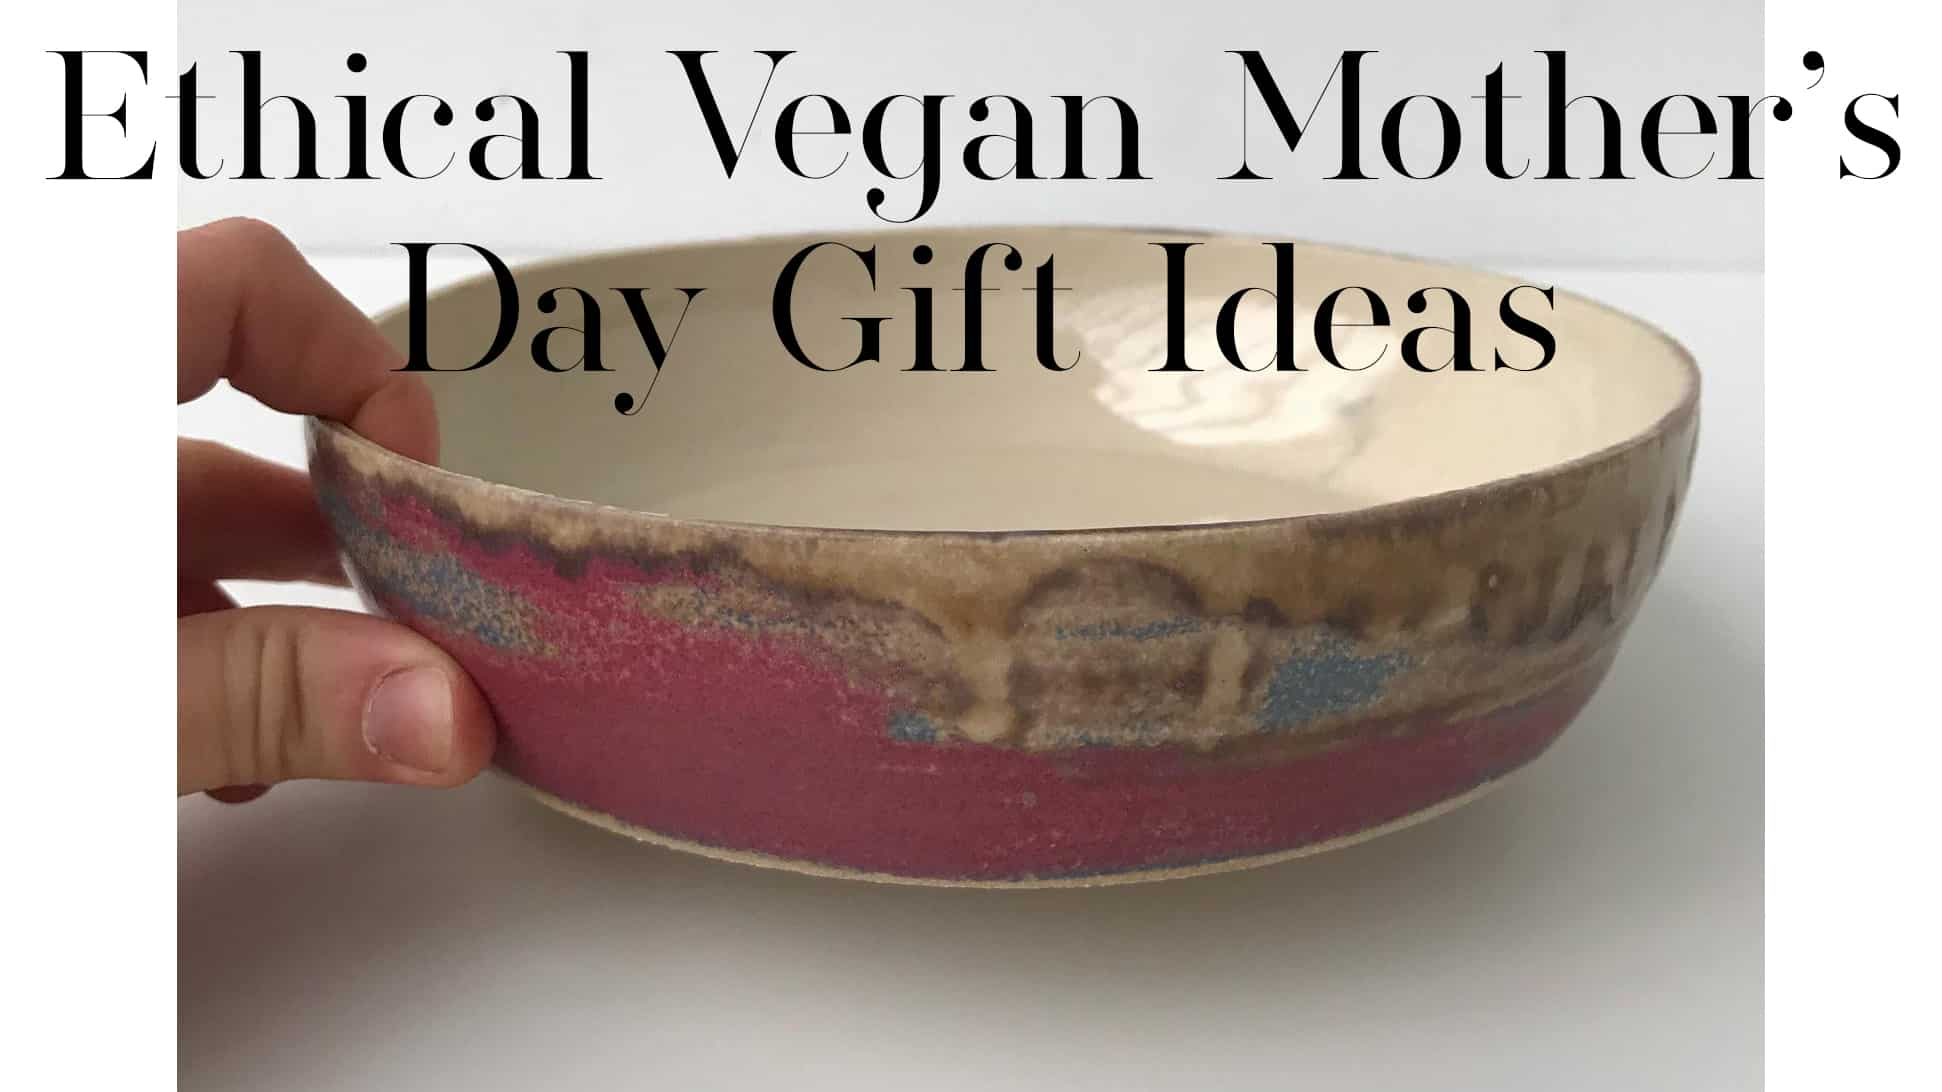 ethical vegan Mother's Day gift Ideas - Pink pasta bowl, handmade wide dish, ceramic serving bowls by CharlottesCeramicArt